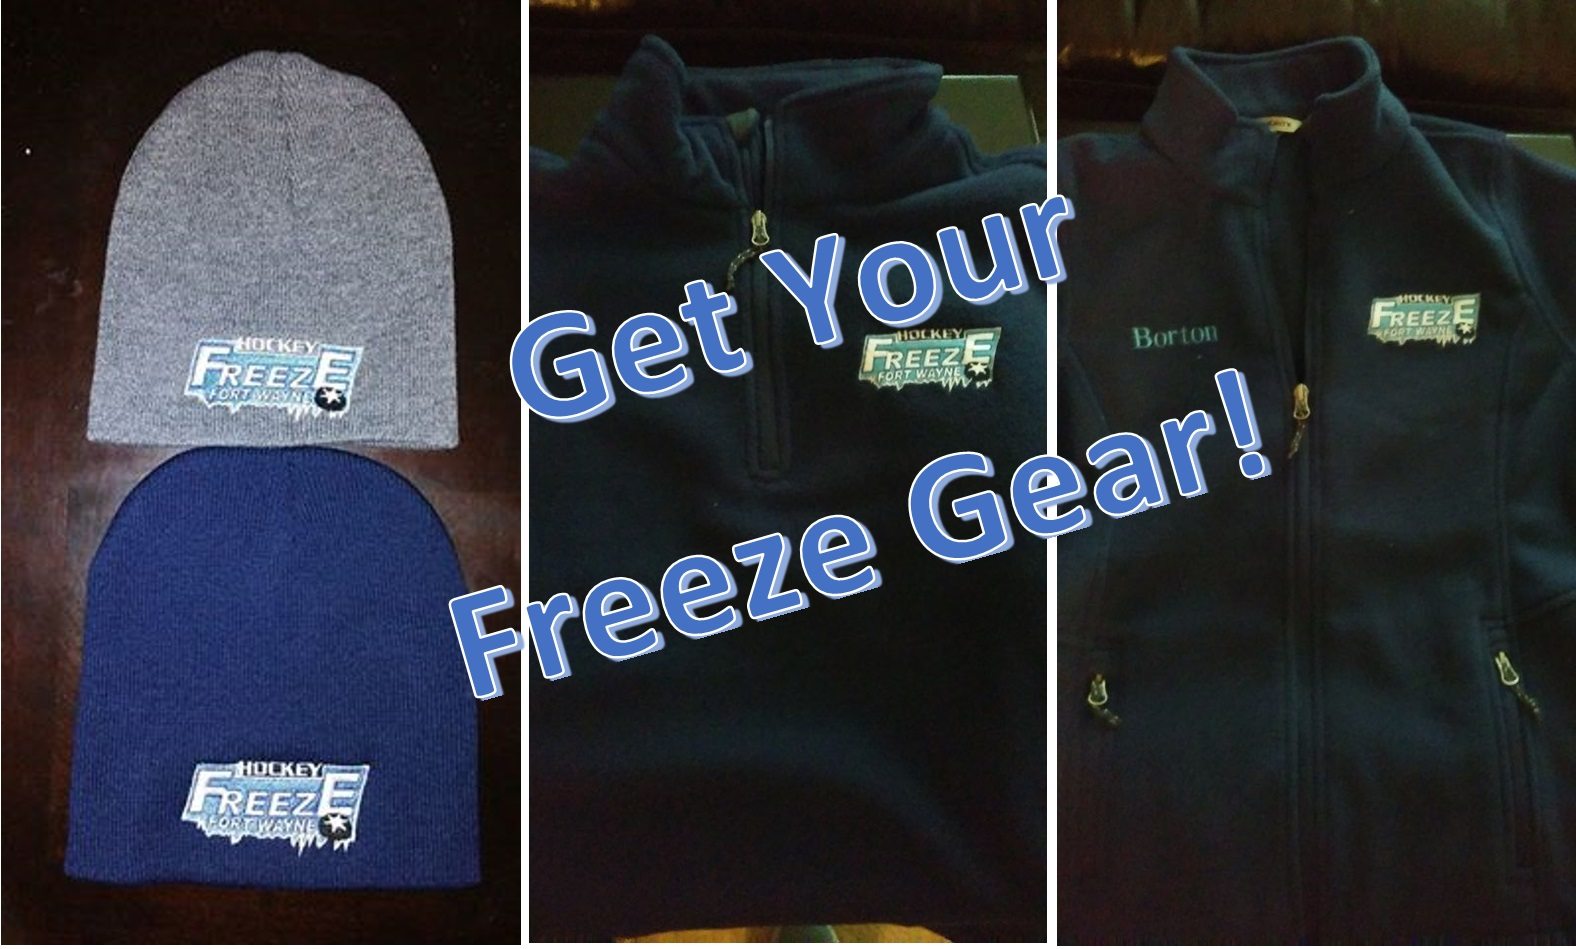 Get Your Freeze Gear!